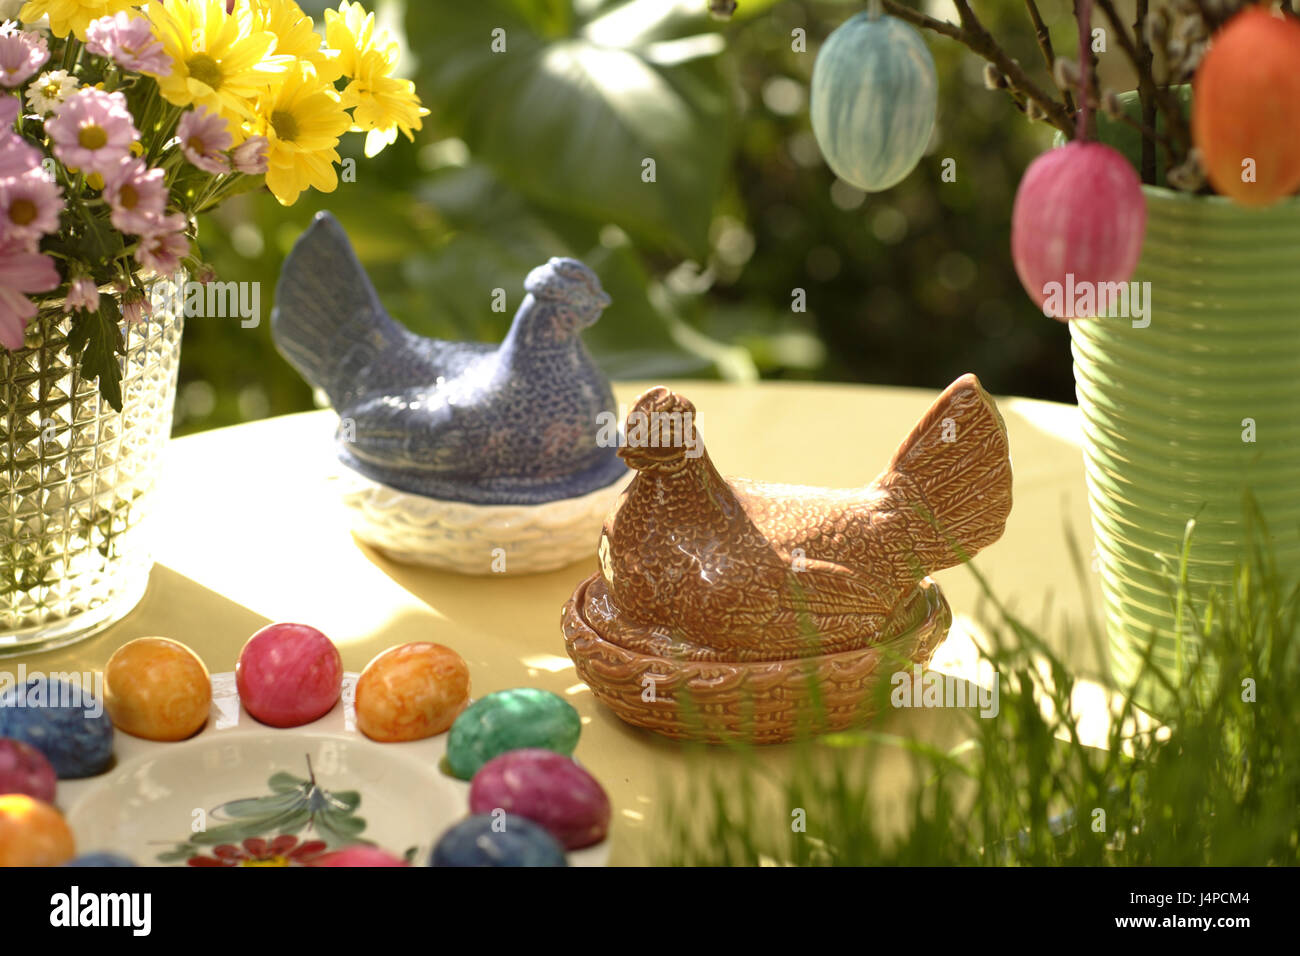 Easter decoration, ceramics, hens, - Stock Image